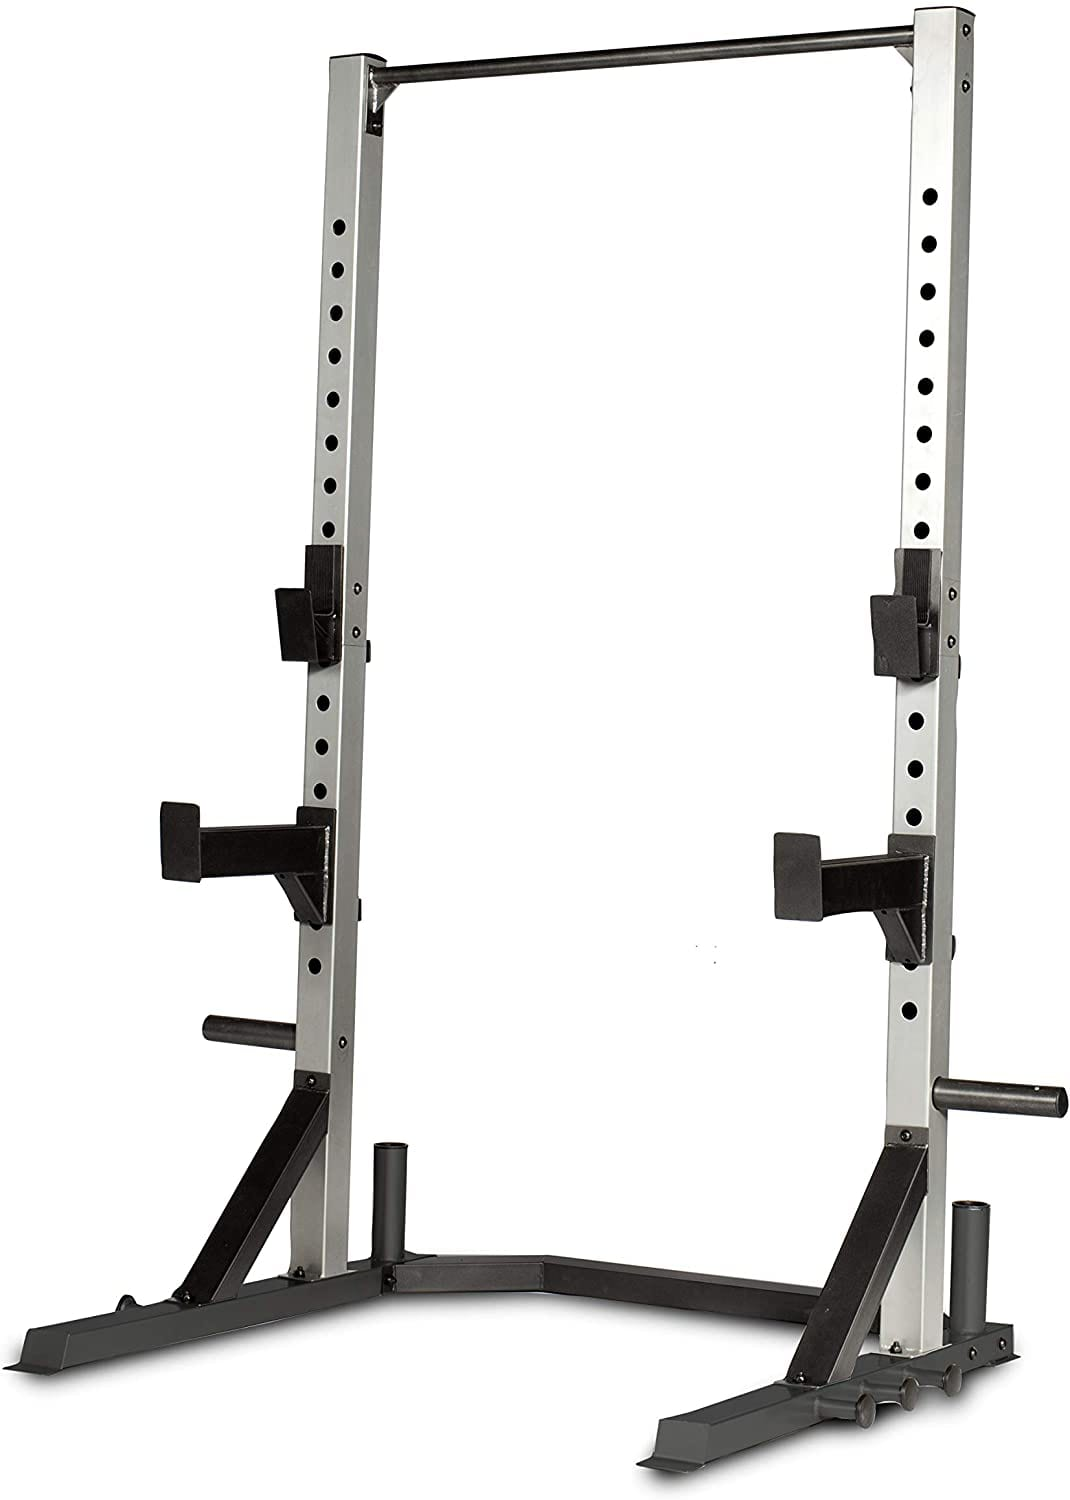 5 Best Half Racks for Your Home Gym 2